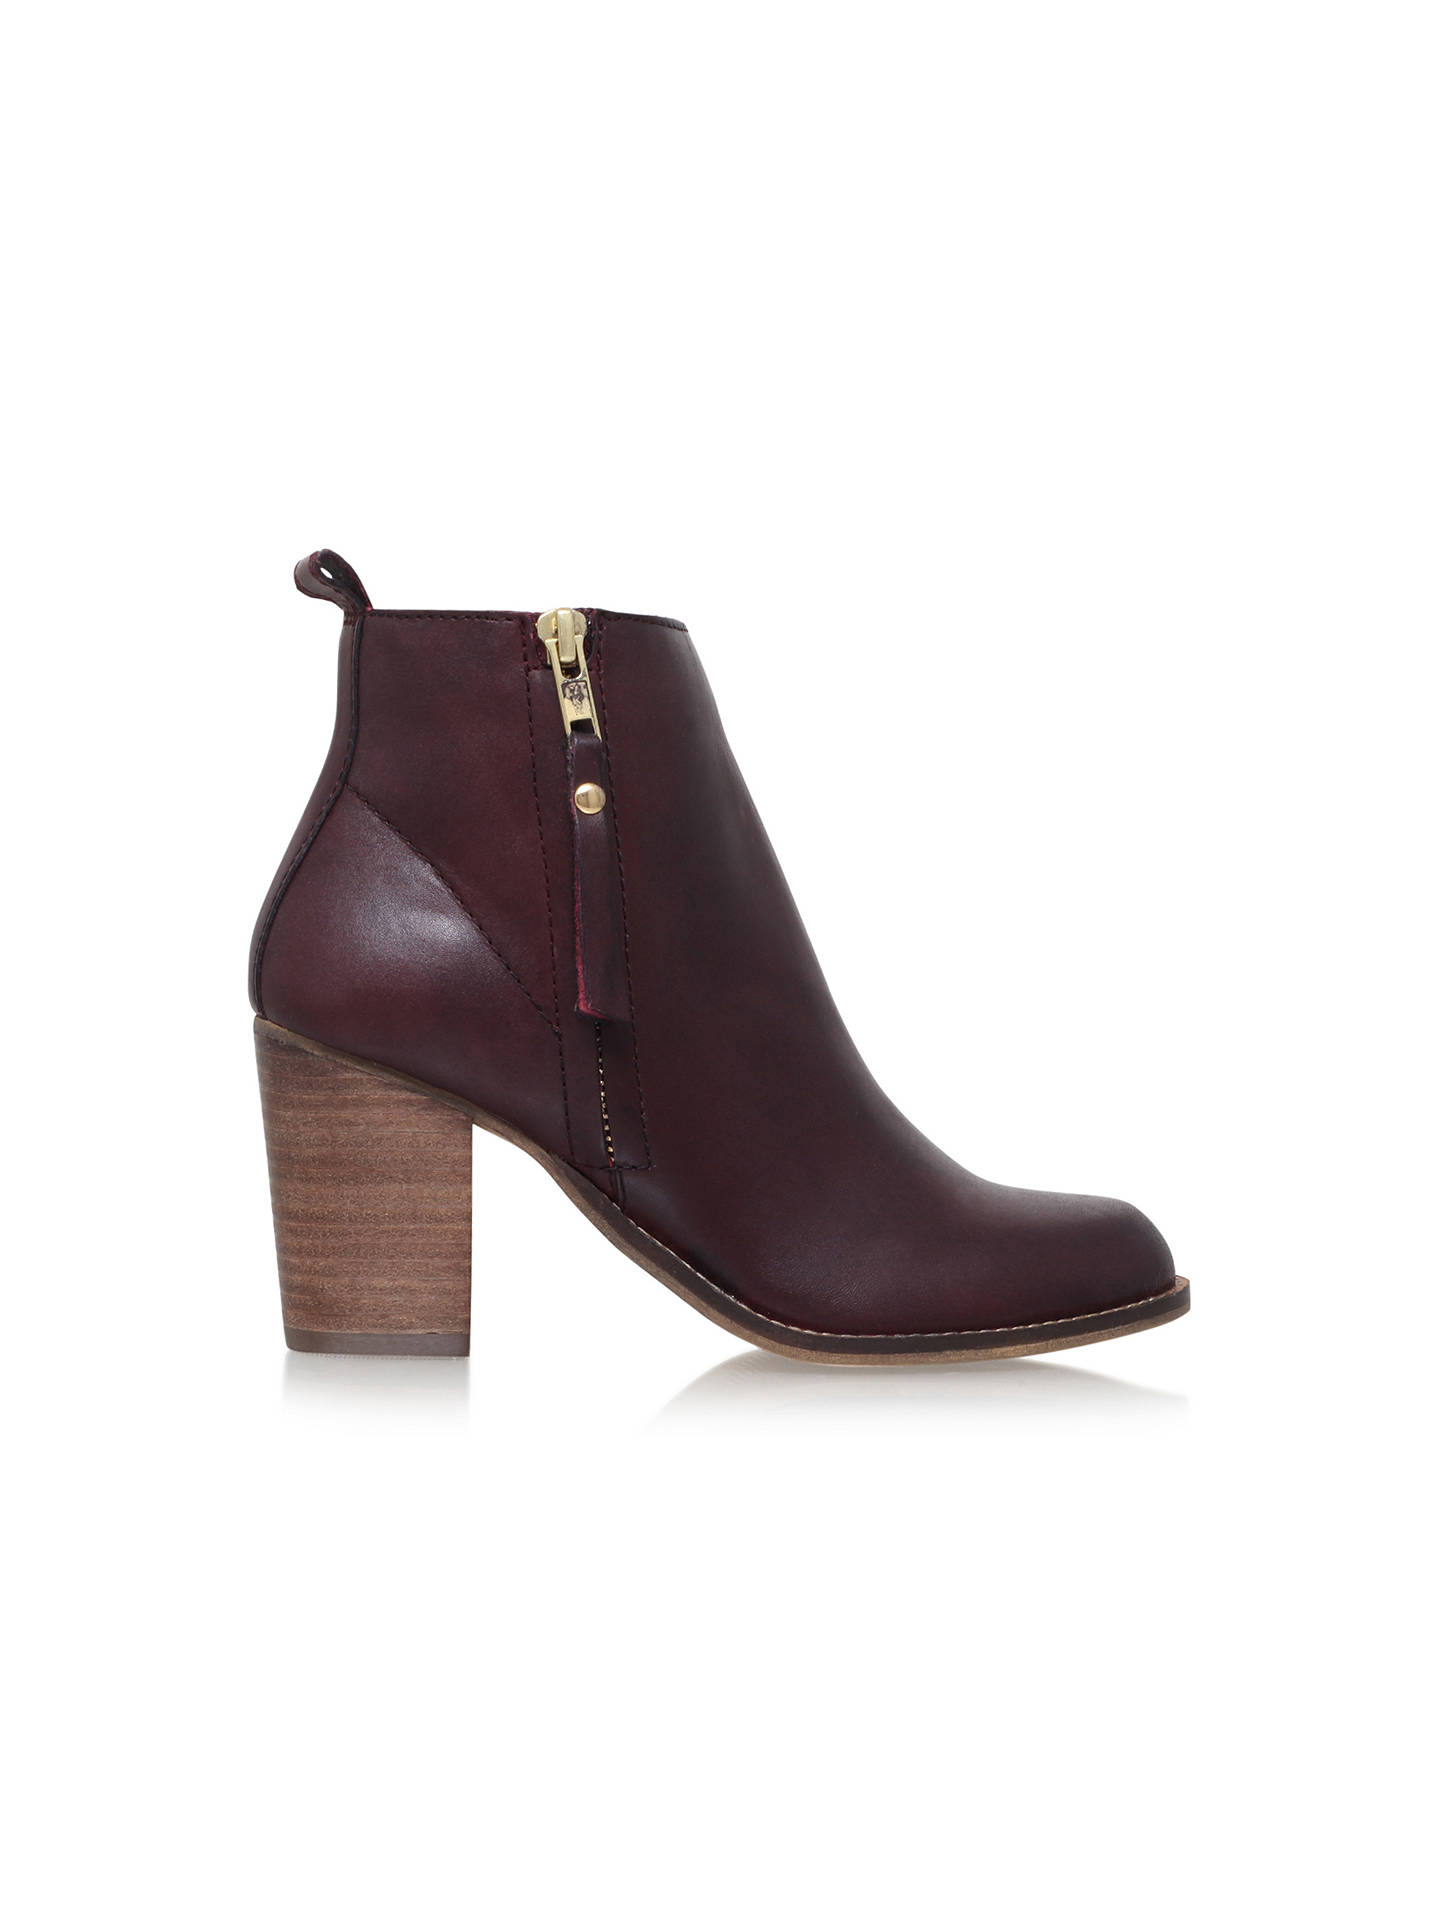 Buy Carvela Tanga Block Heeled Ankle Boots, Wine Leather, 5 Online at johnlewis.com